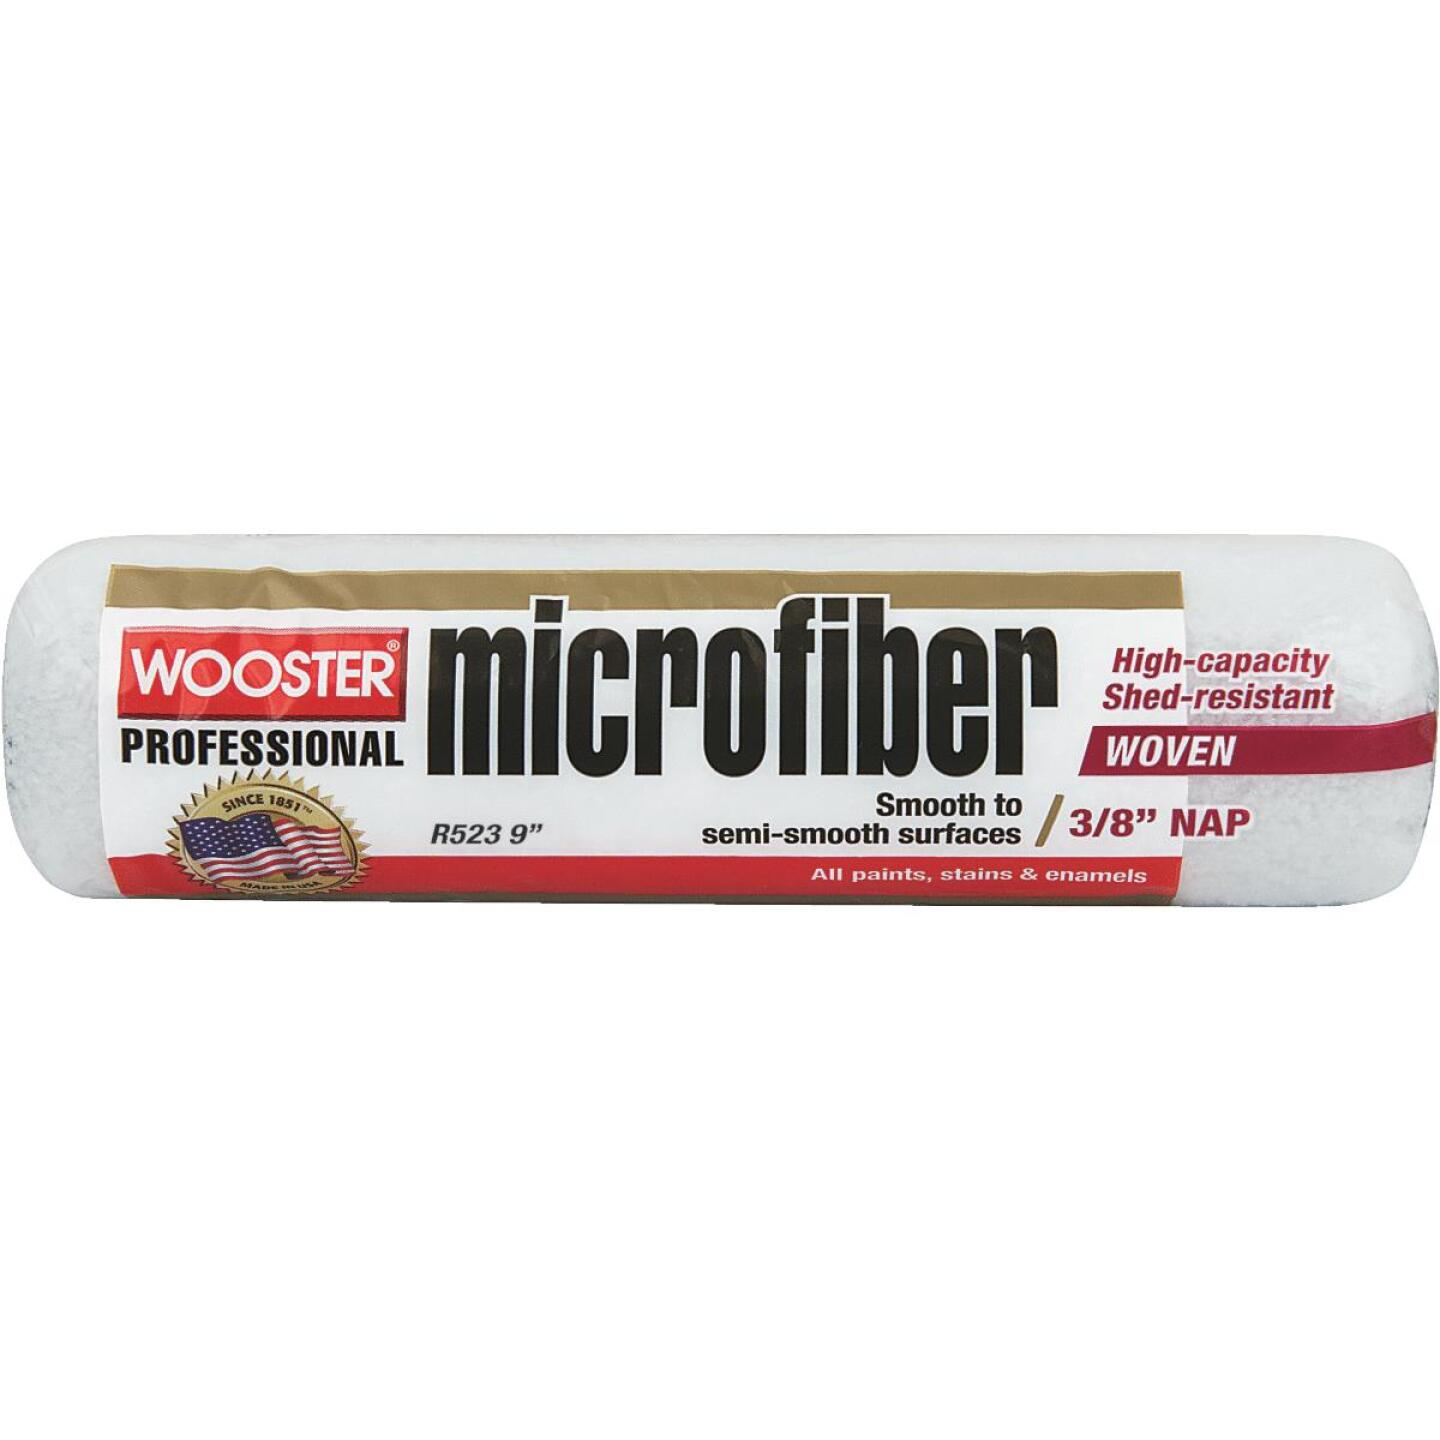 Wooster 9 In. x 3/8 In. Microfiber Roller Cover Image 1